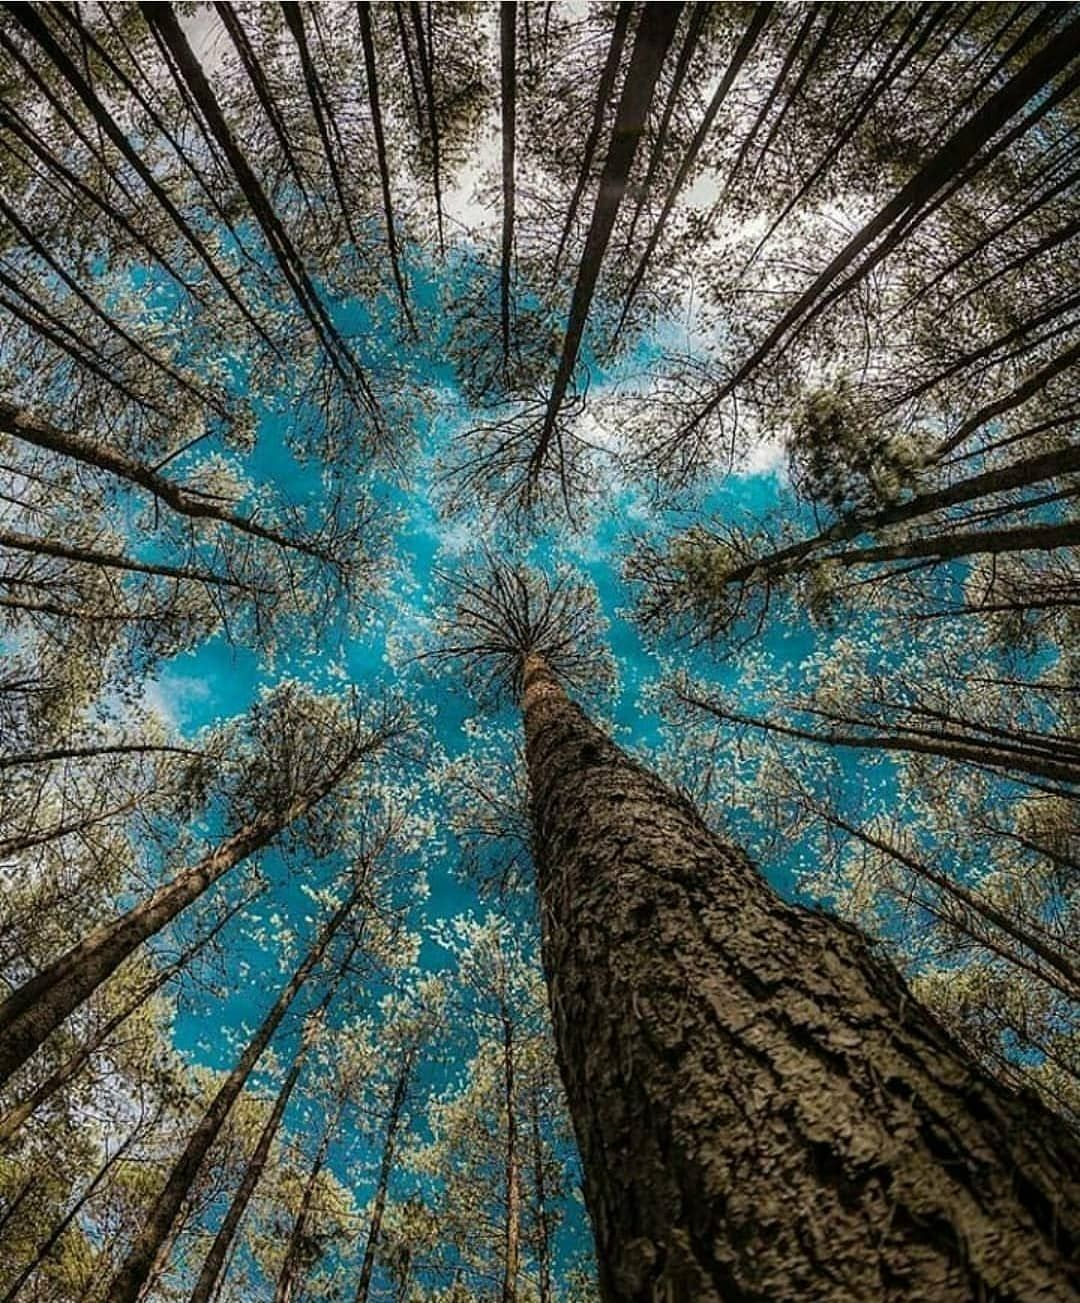 Upside Down Water Trees Perspective Photography Perspective Photos Nature Photography